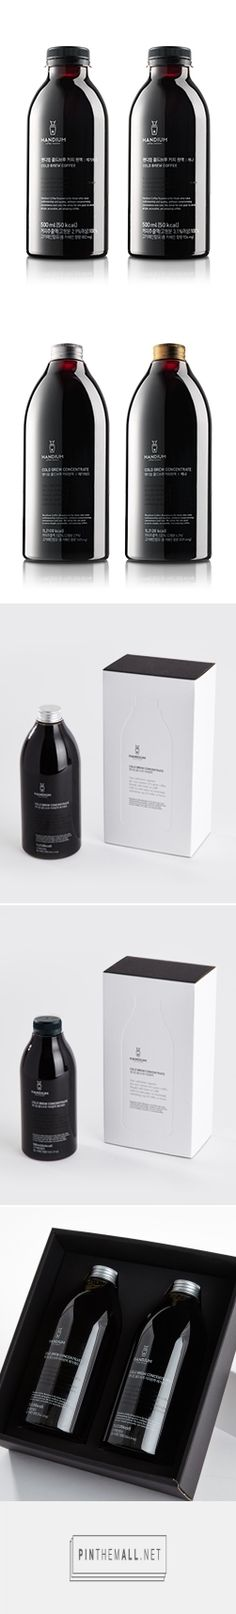 Cold brew coffee products are all for sale on the Handium website. The packaging design is so simple and lovely PD